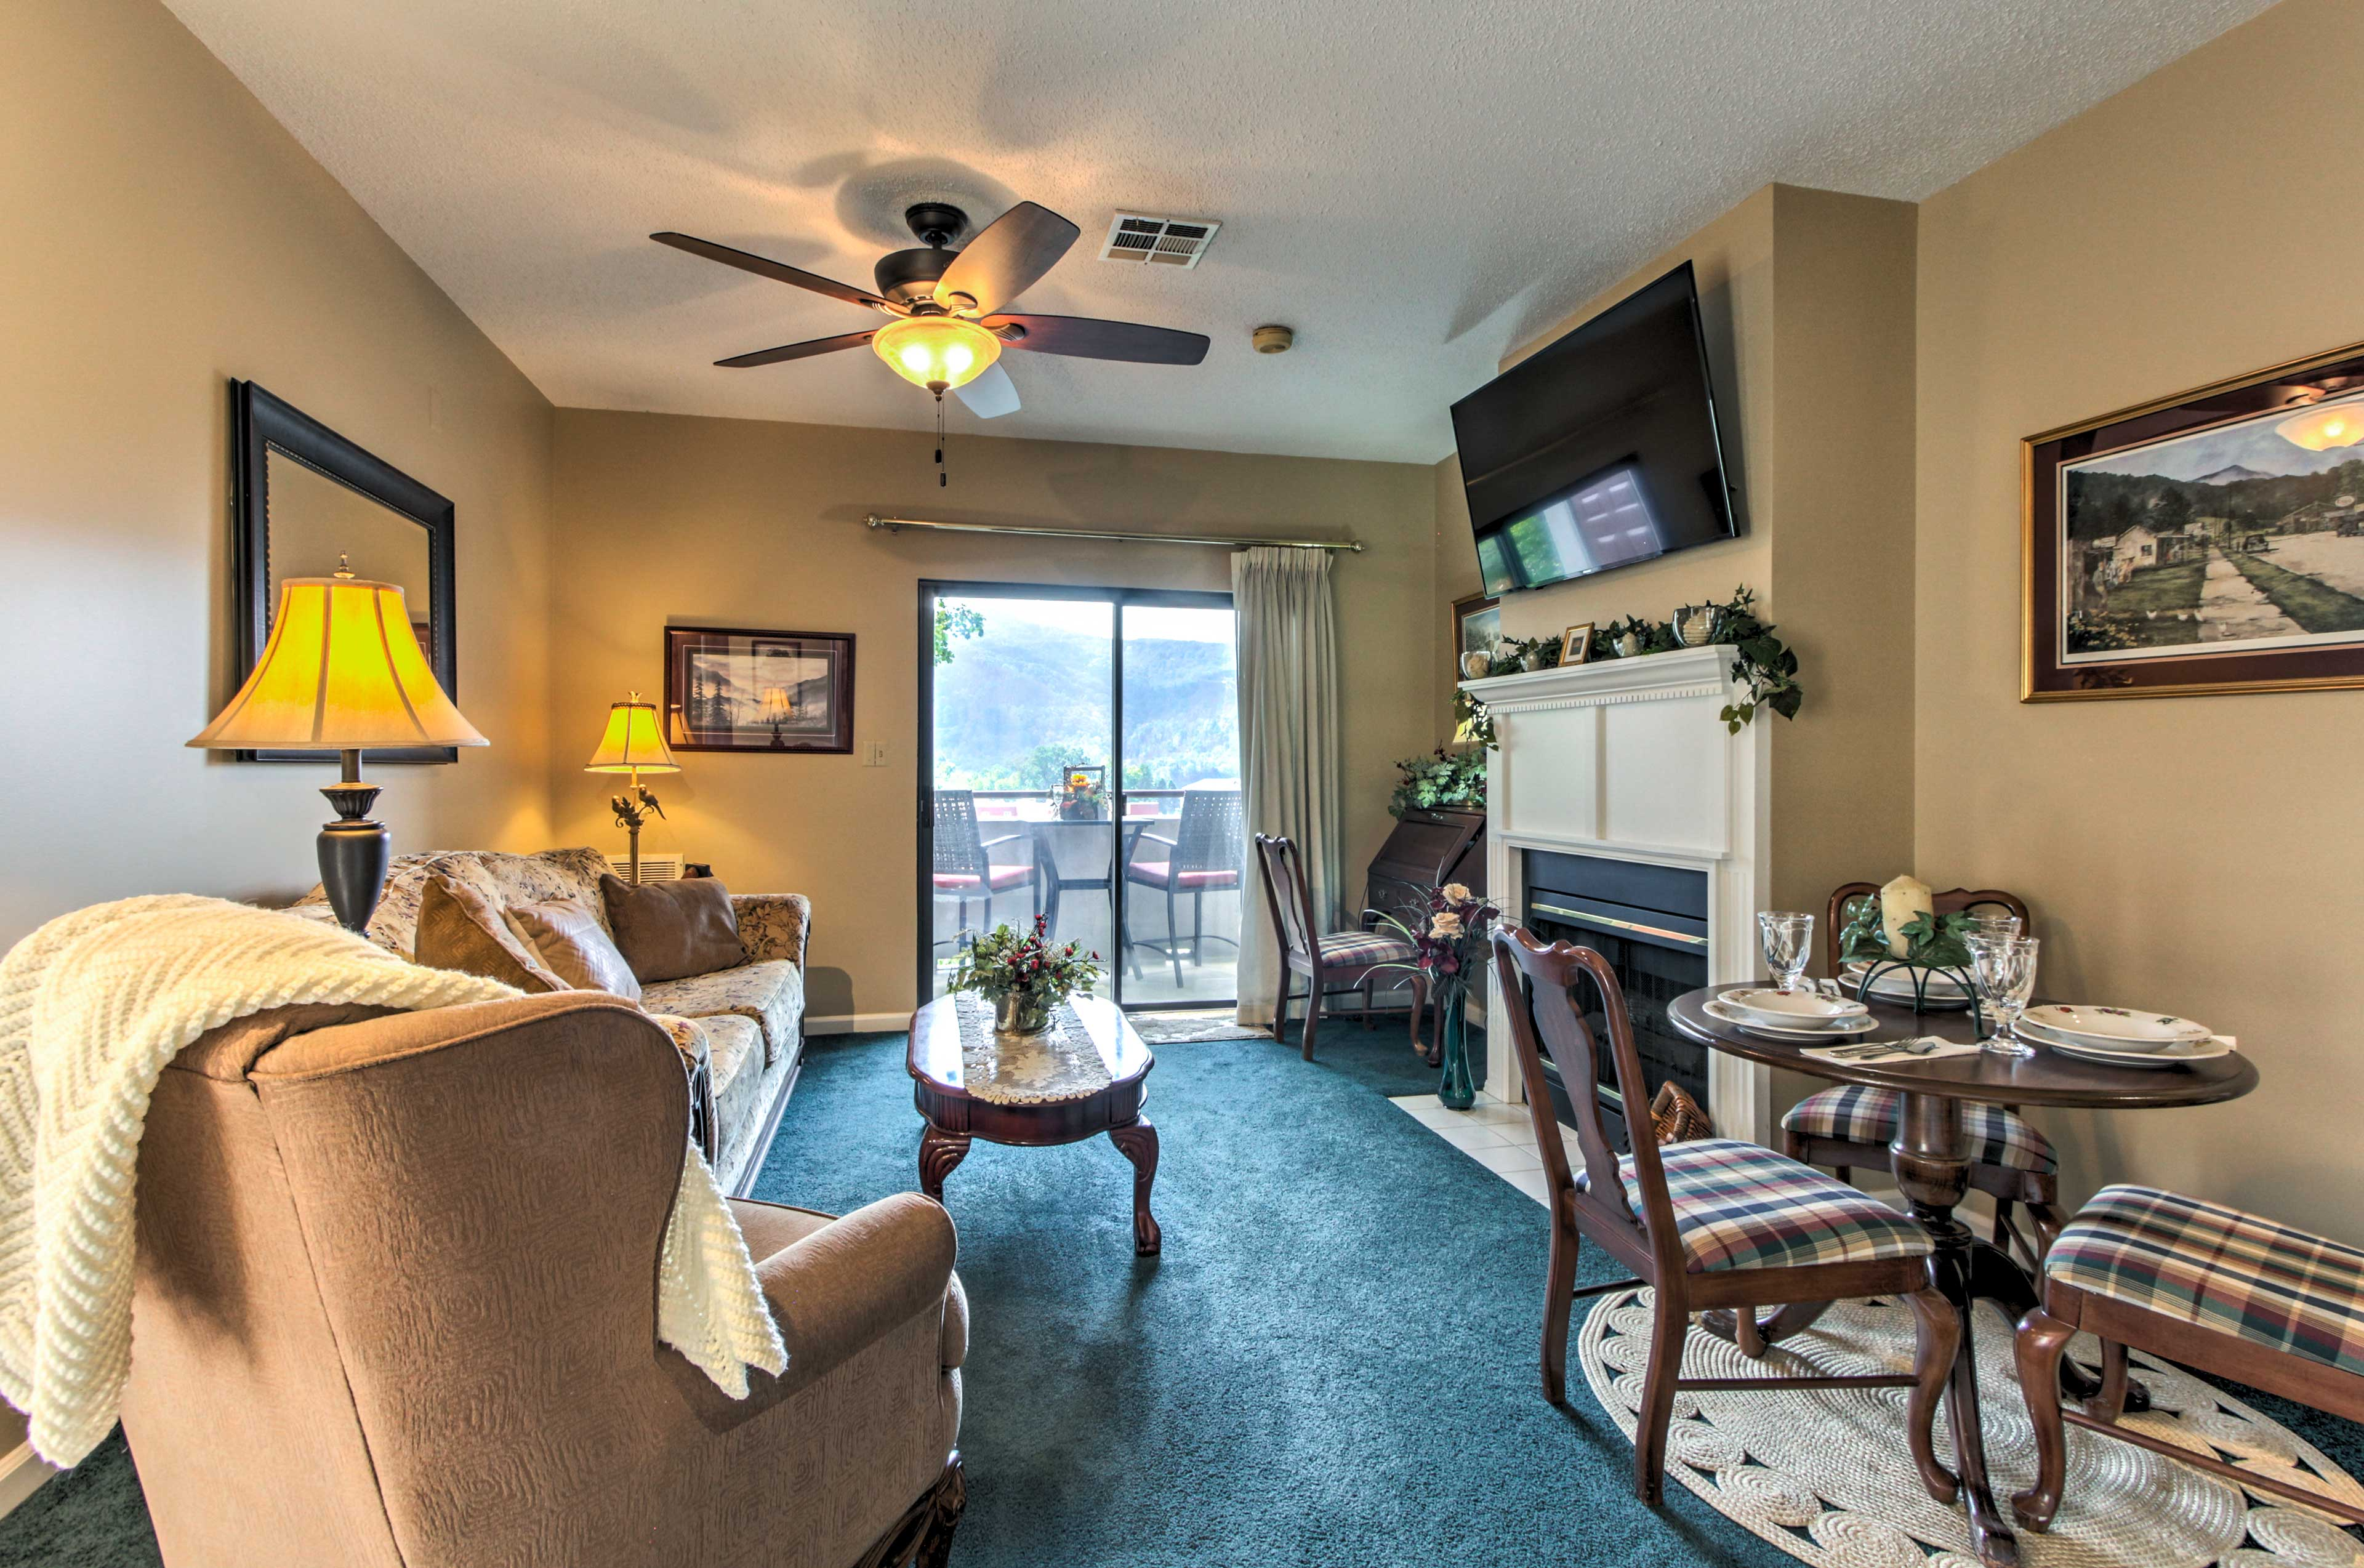 Unwind during downtime in the well-appointed living space.